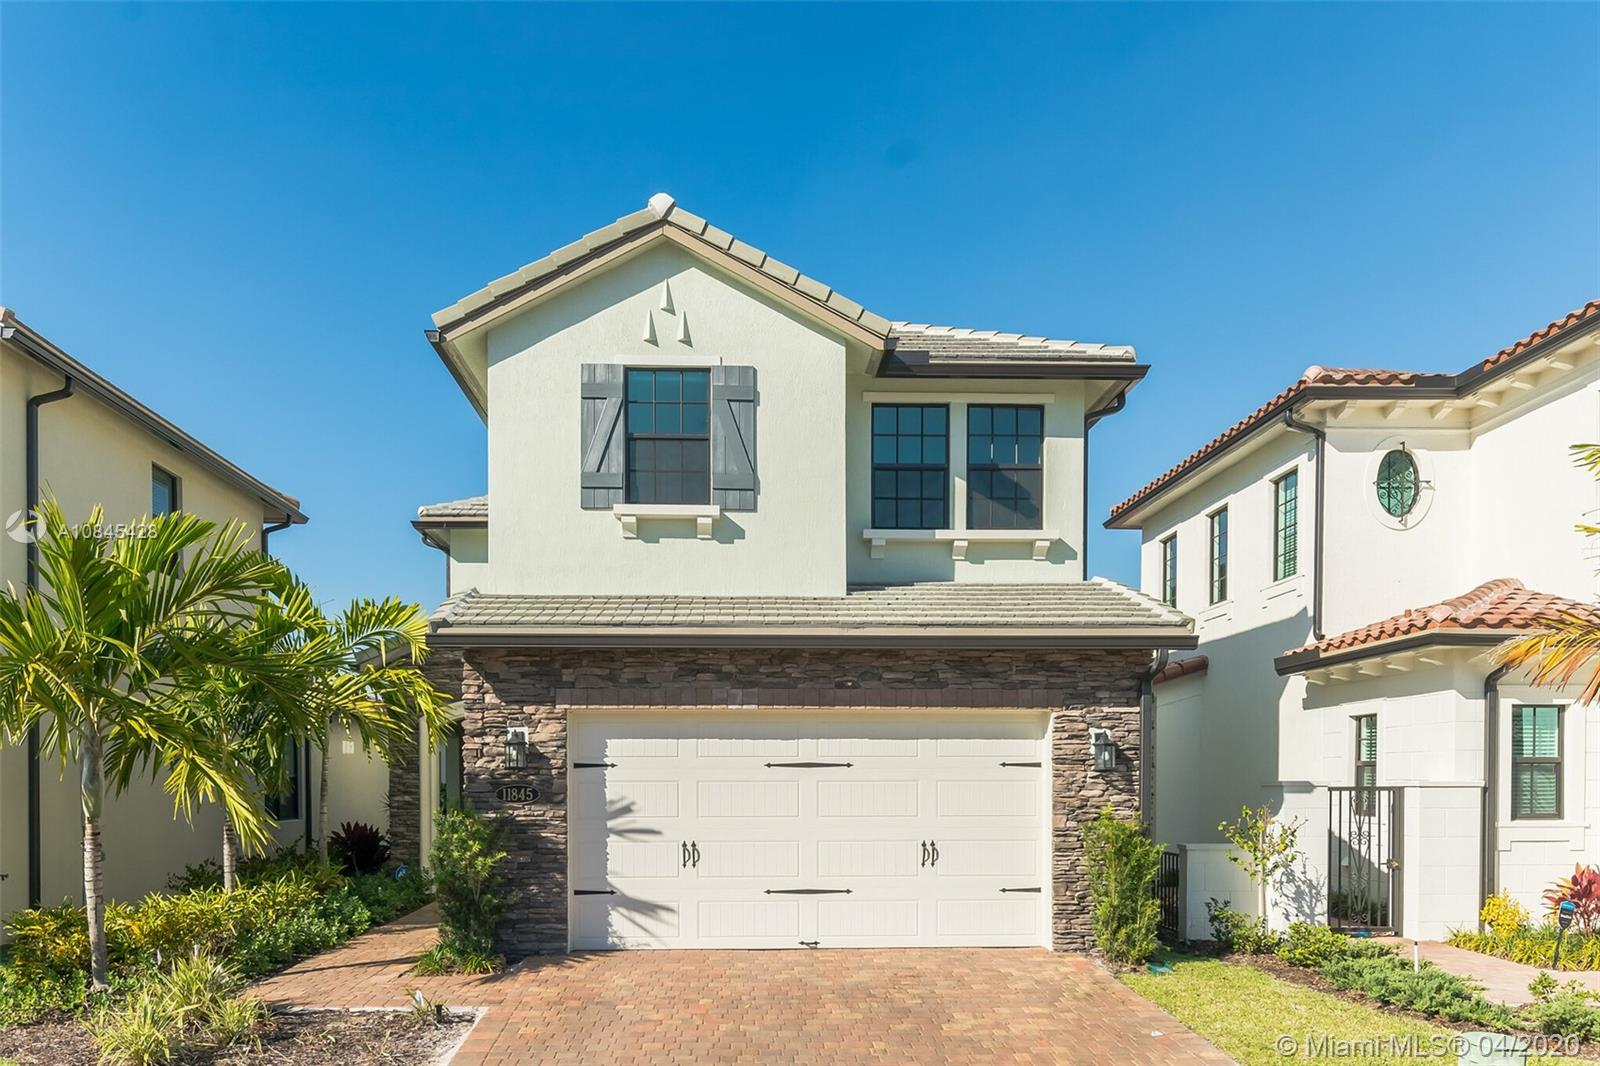 Pembroke Pines Fl Homes For Sale Search All Miami Houses For Sale